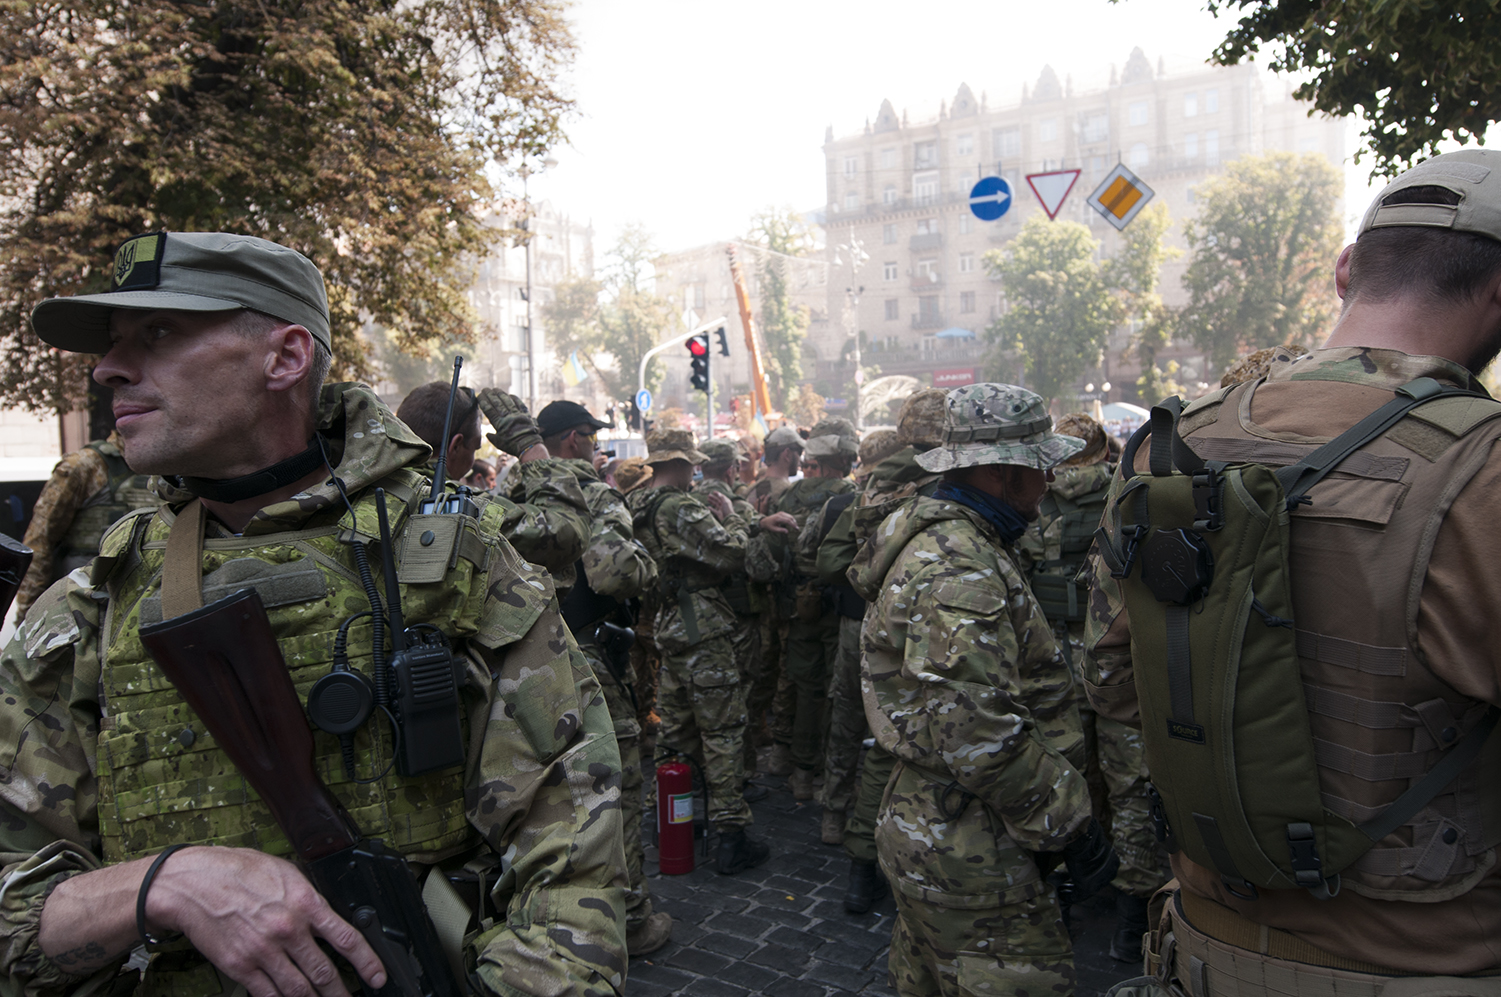 Soldiers from the National Guard being pushed back from Maidan